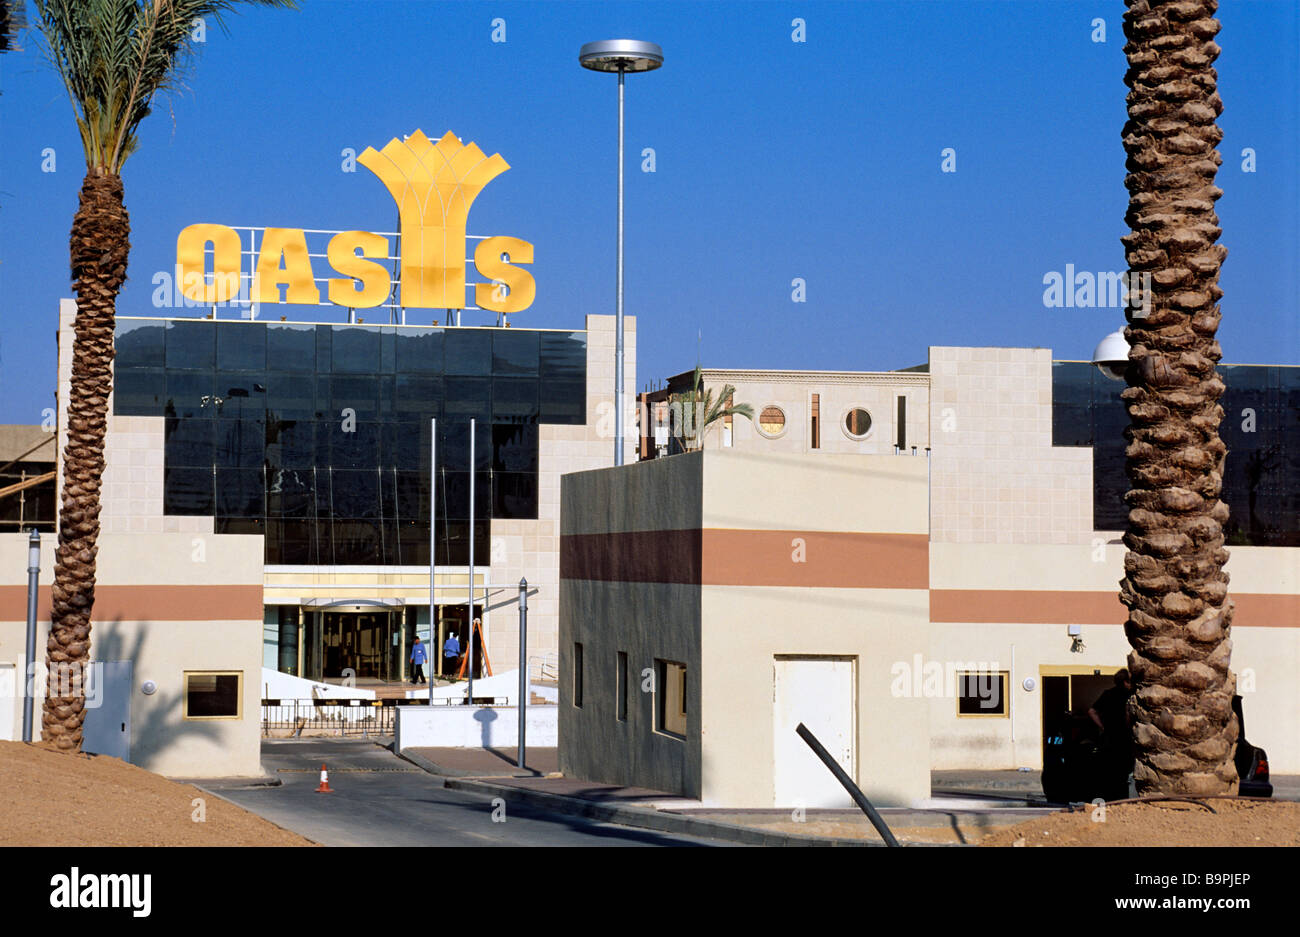 Casino oasis jericho n game 2 free download